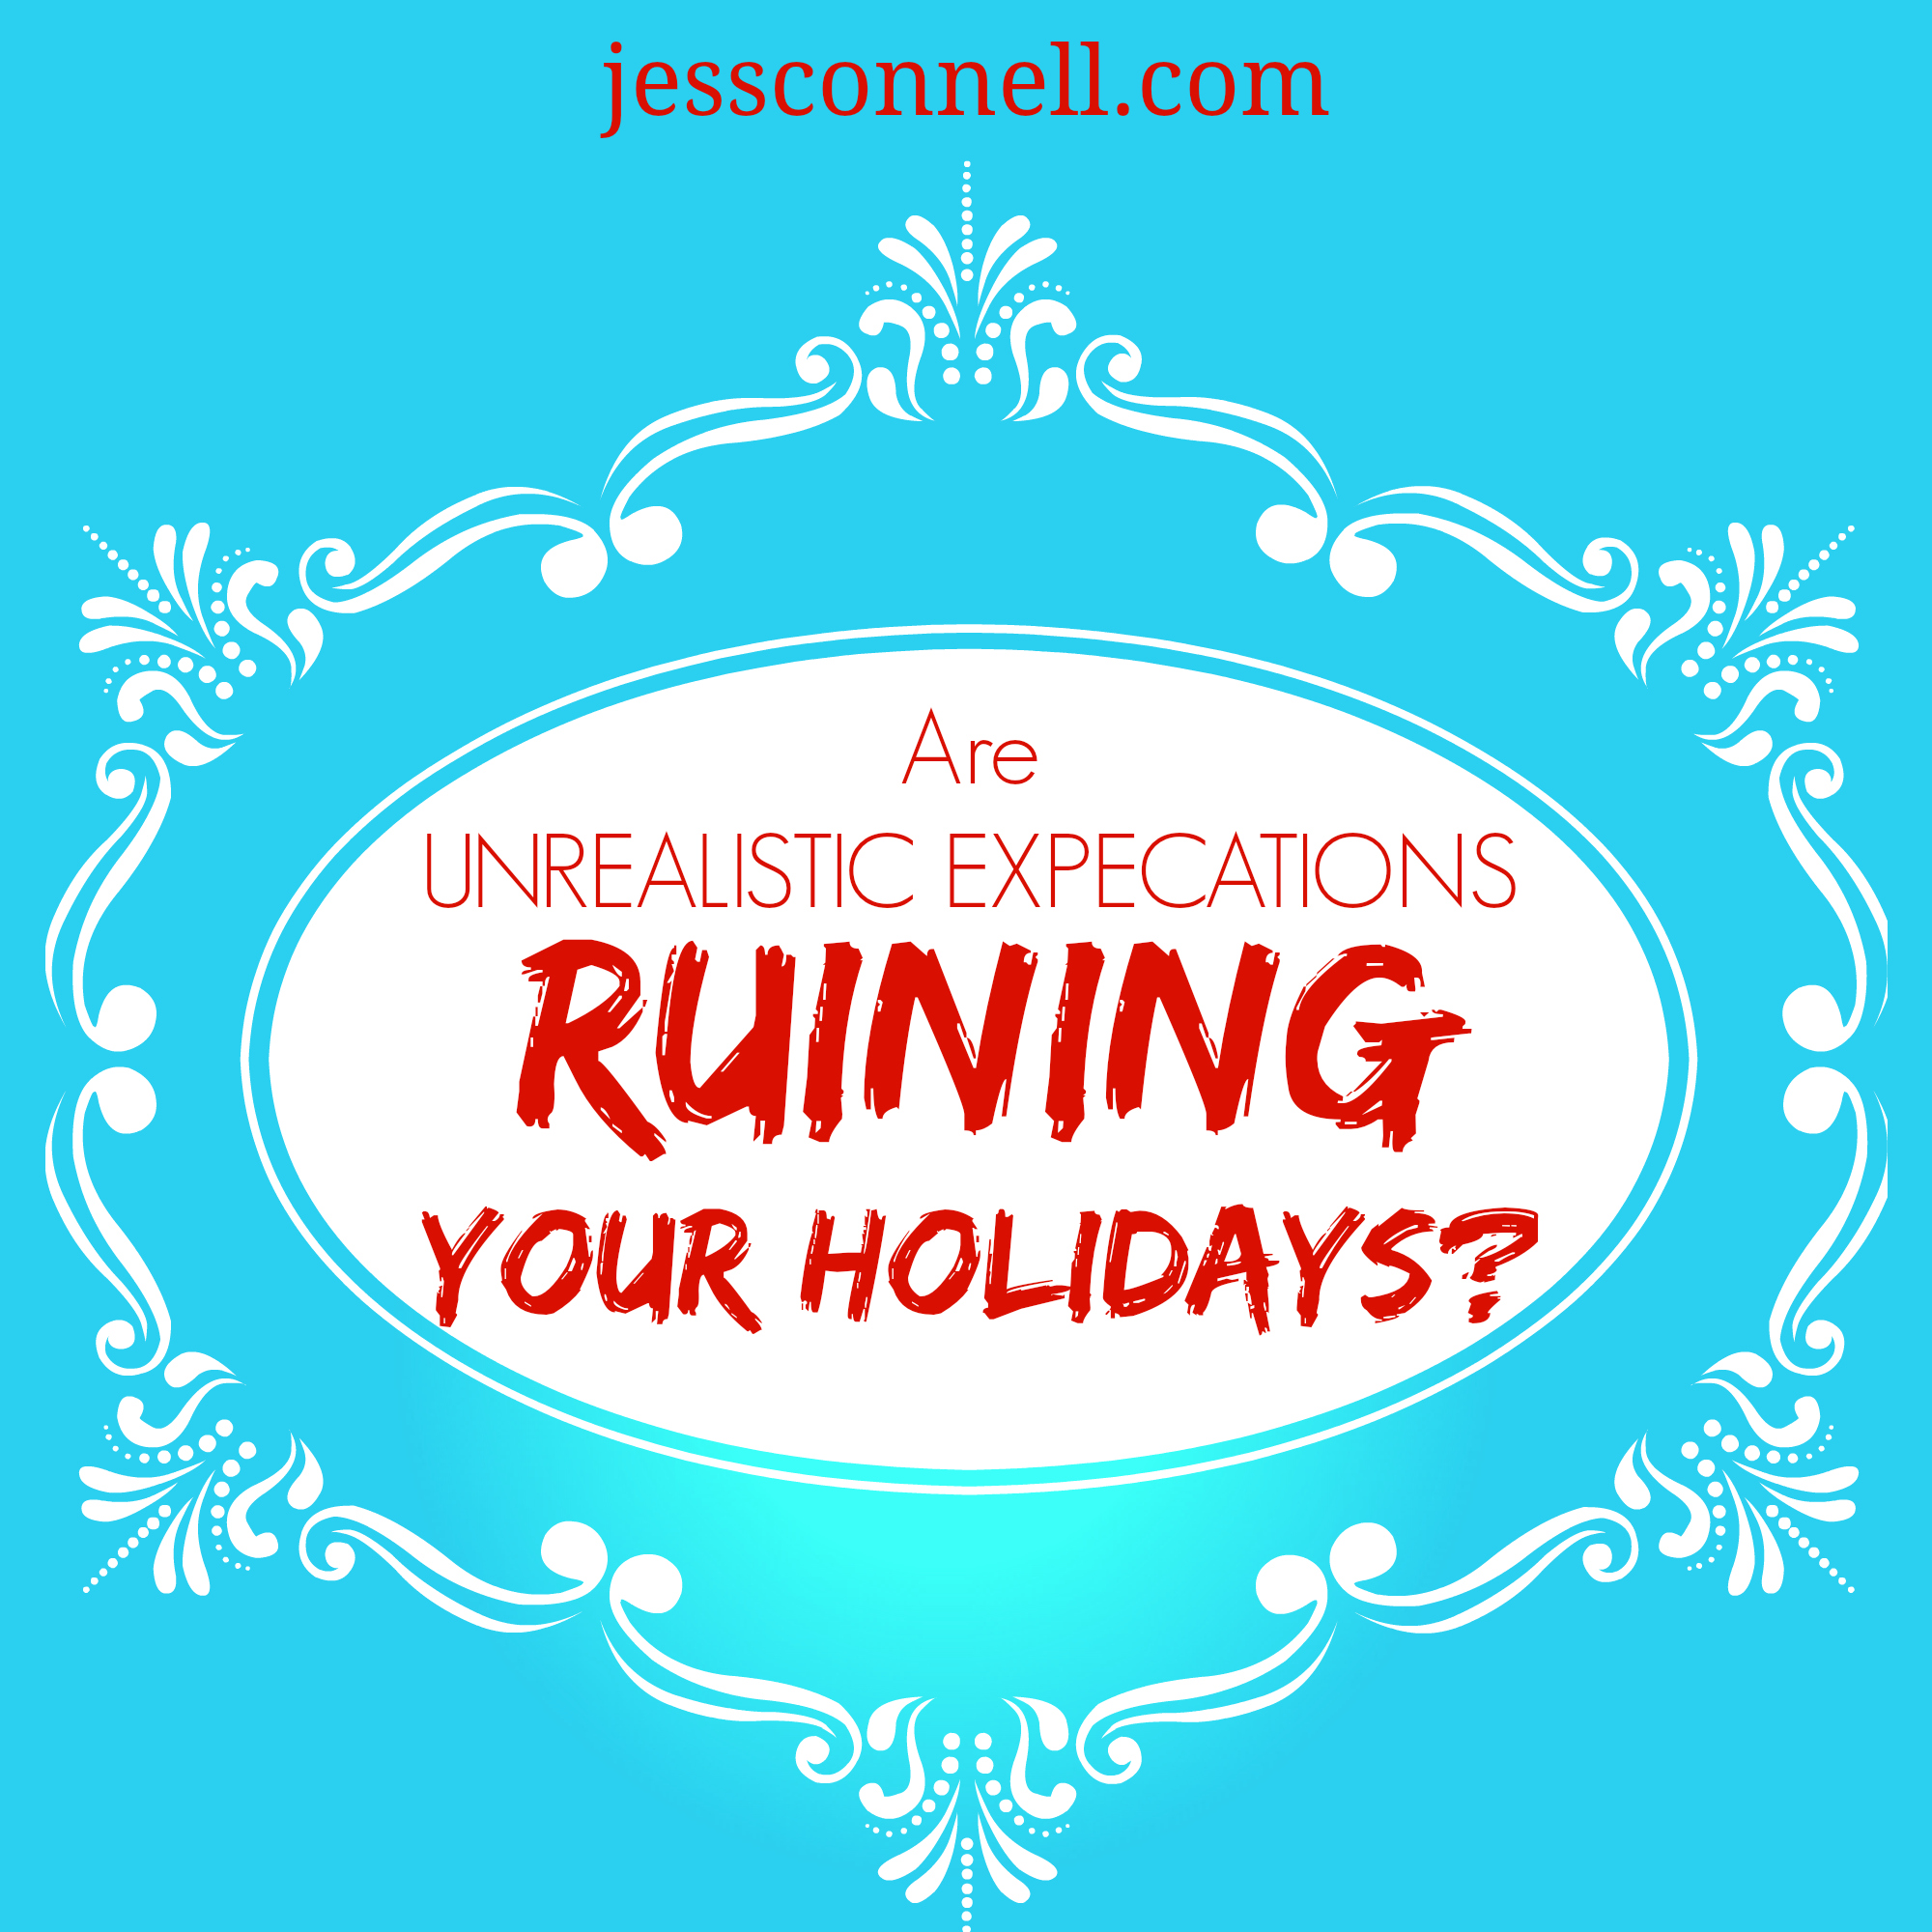 Are Unrealistic Expectations RUINING Your Holidays // jessconnell.com